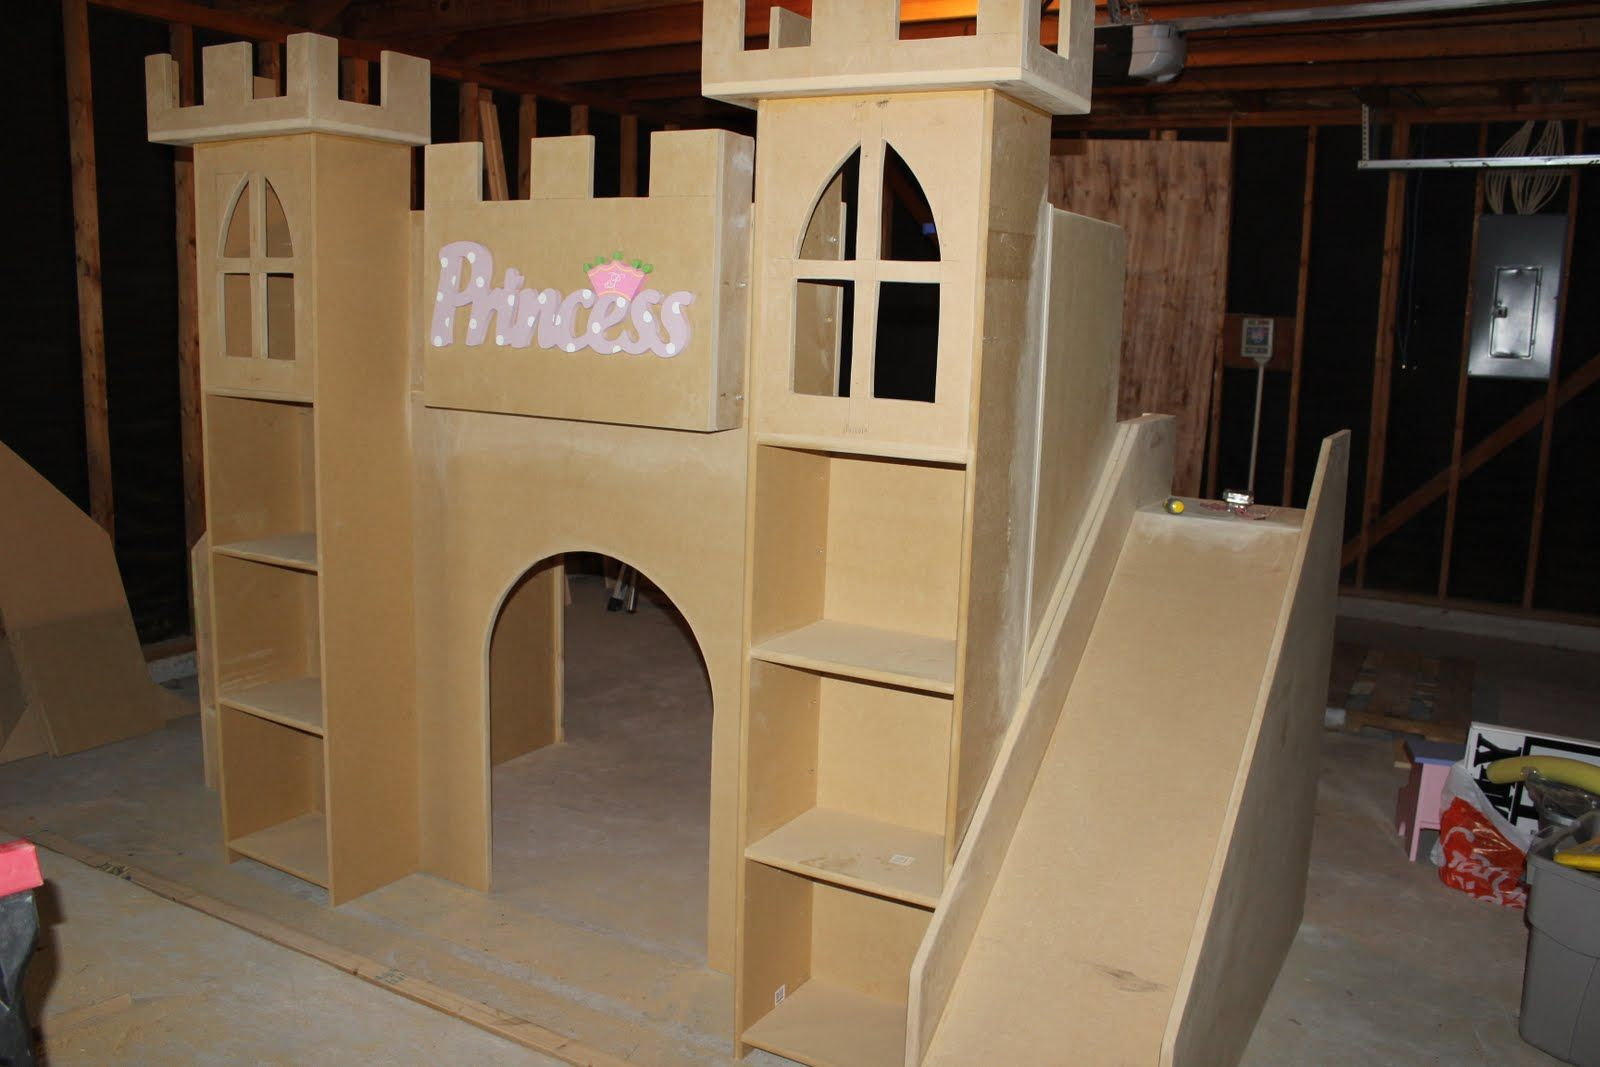 Princess castle bed decorating new house pinterest for Castle bedroom ideas